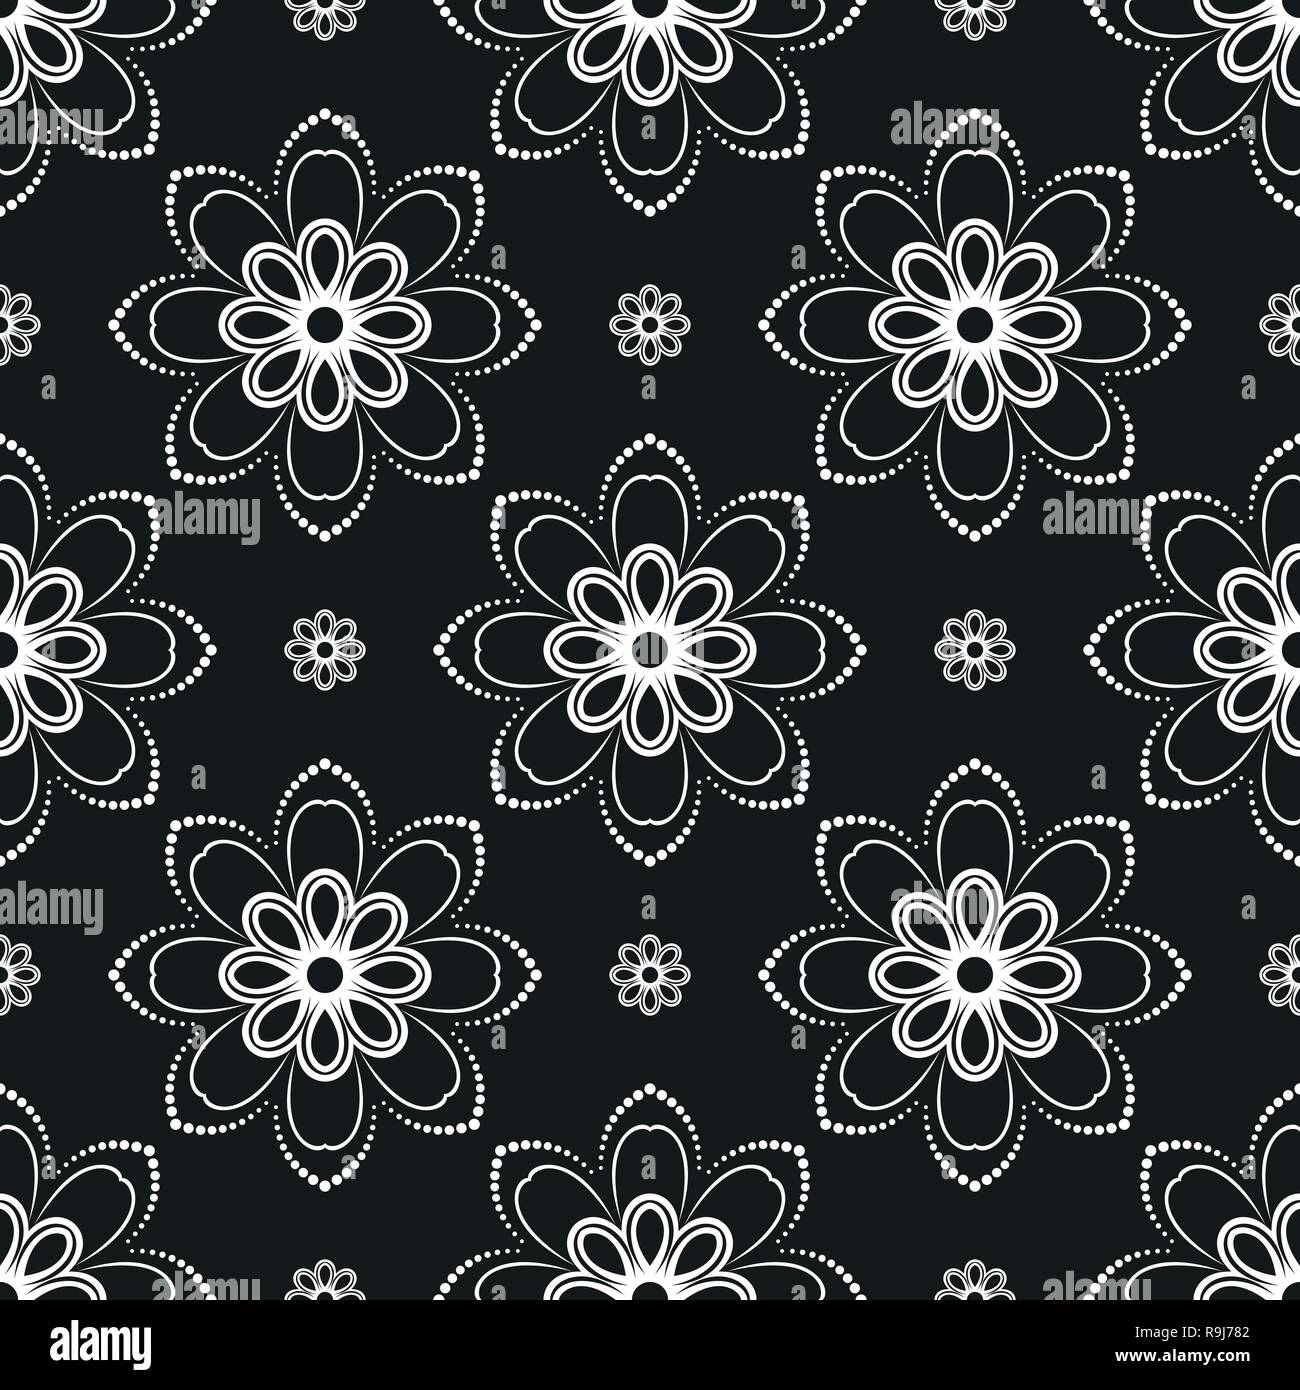 Floral Vector Ornament Seamless Abstract Classic Background